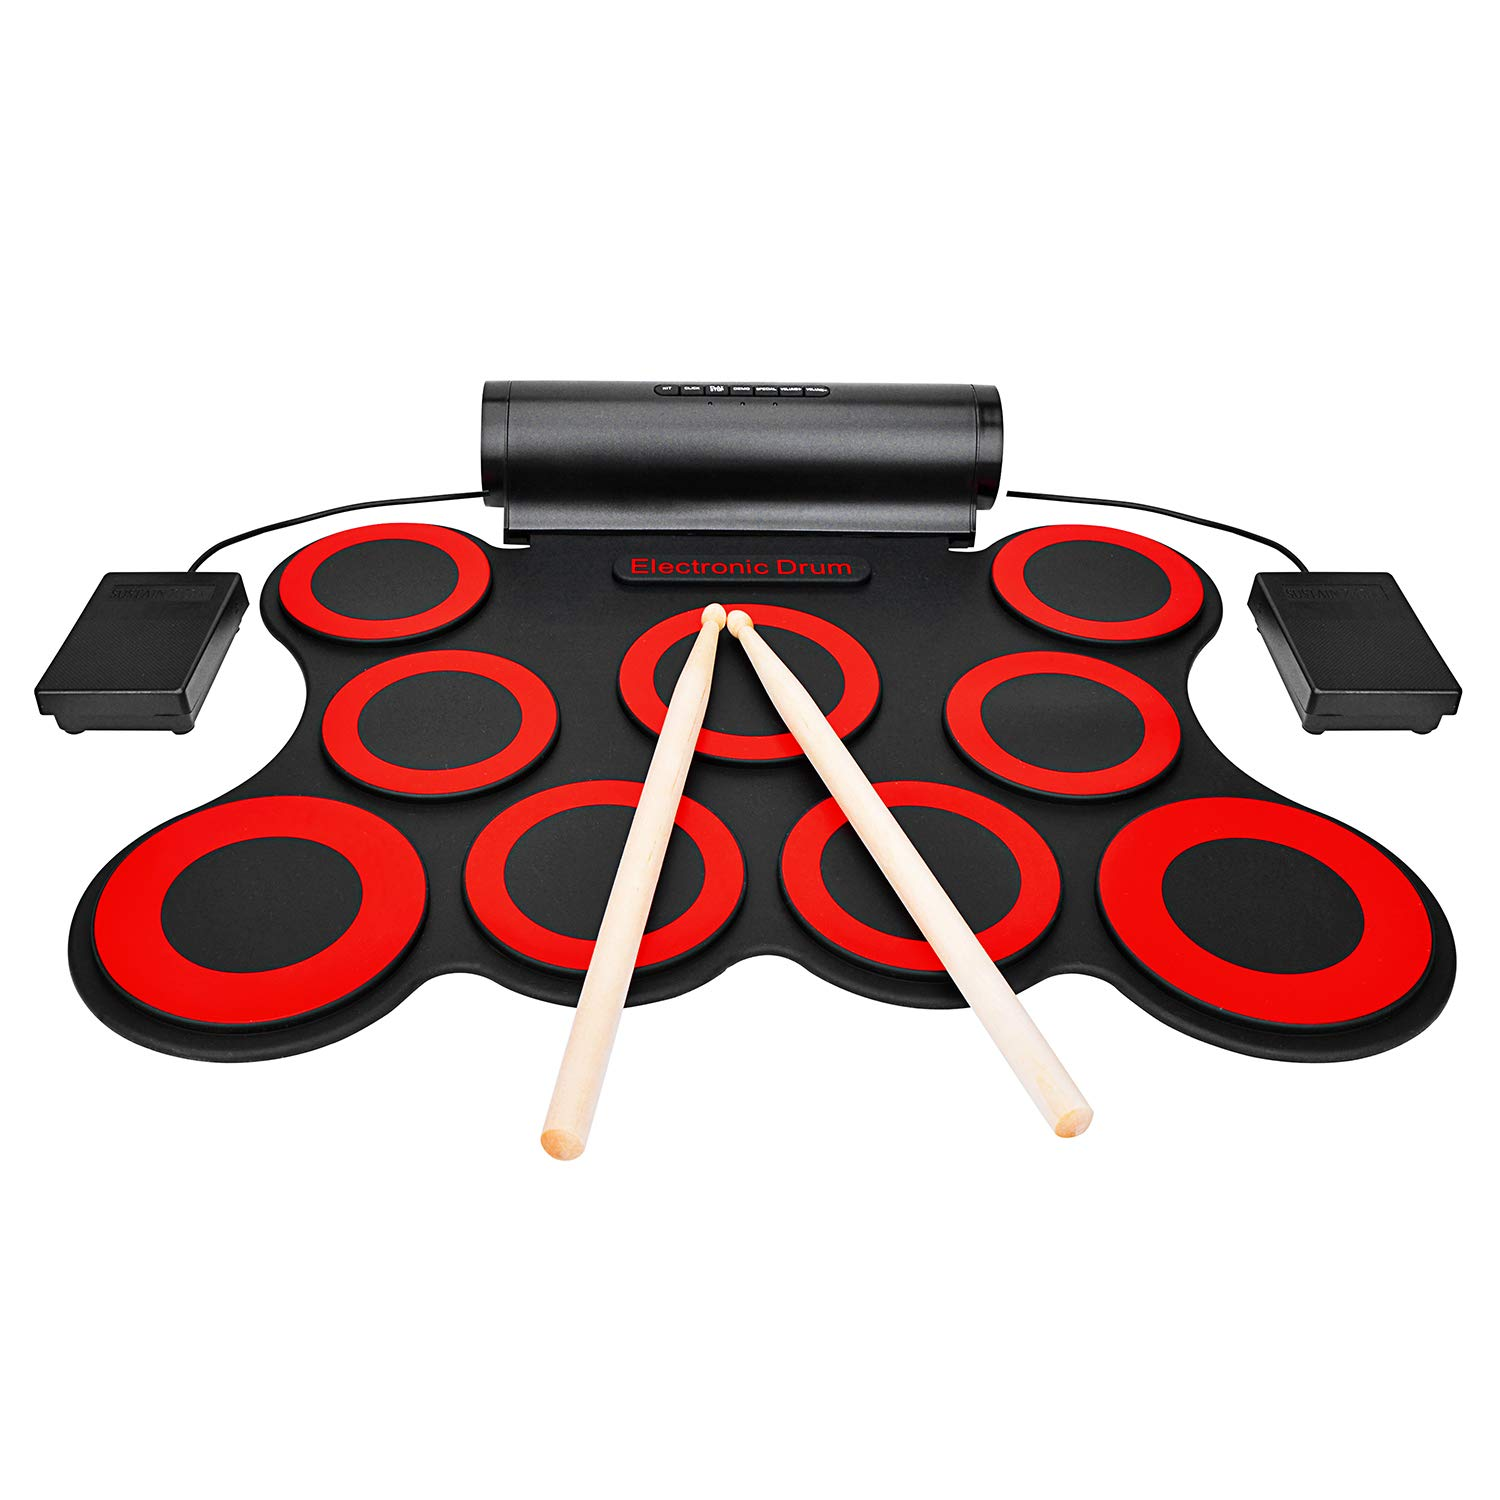 9-button Electronic Drum Set With Headphone Jack Built-in Speaker and Battery Drum Sticks Pedals Christmas Holiday Birthday Gift by roboller